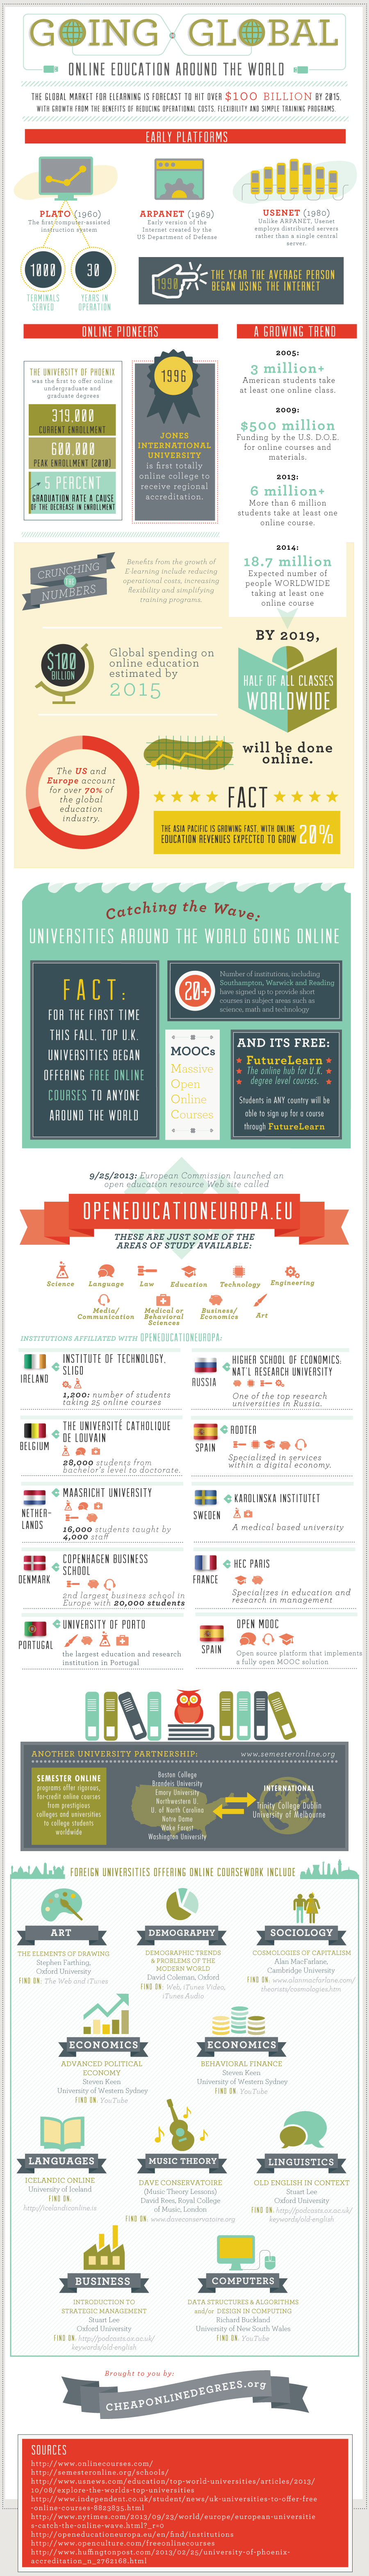 Online Learning Going Global